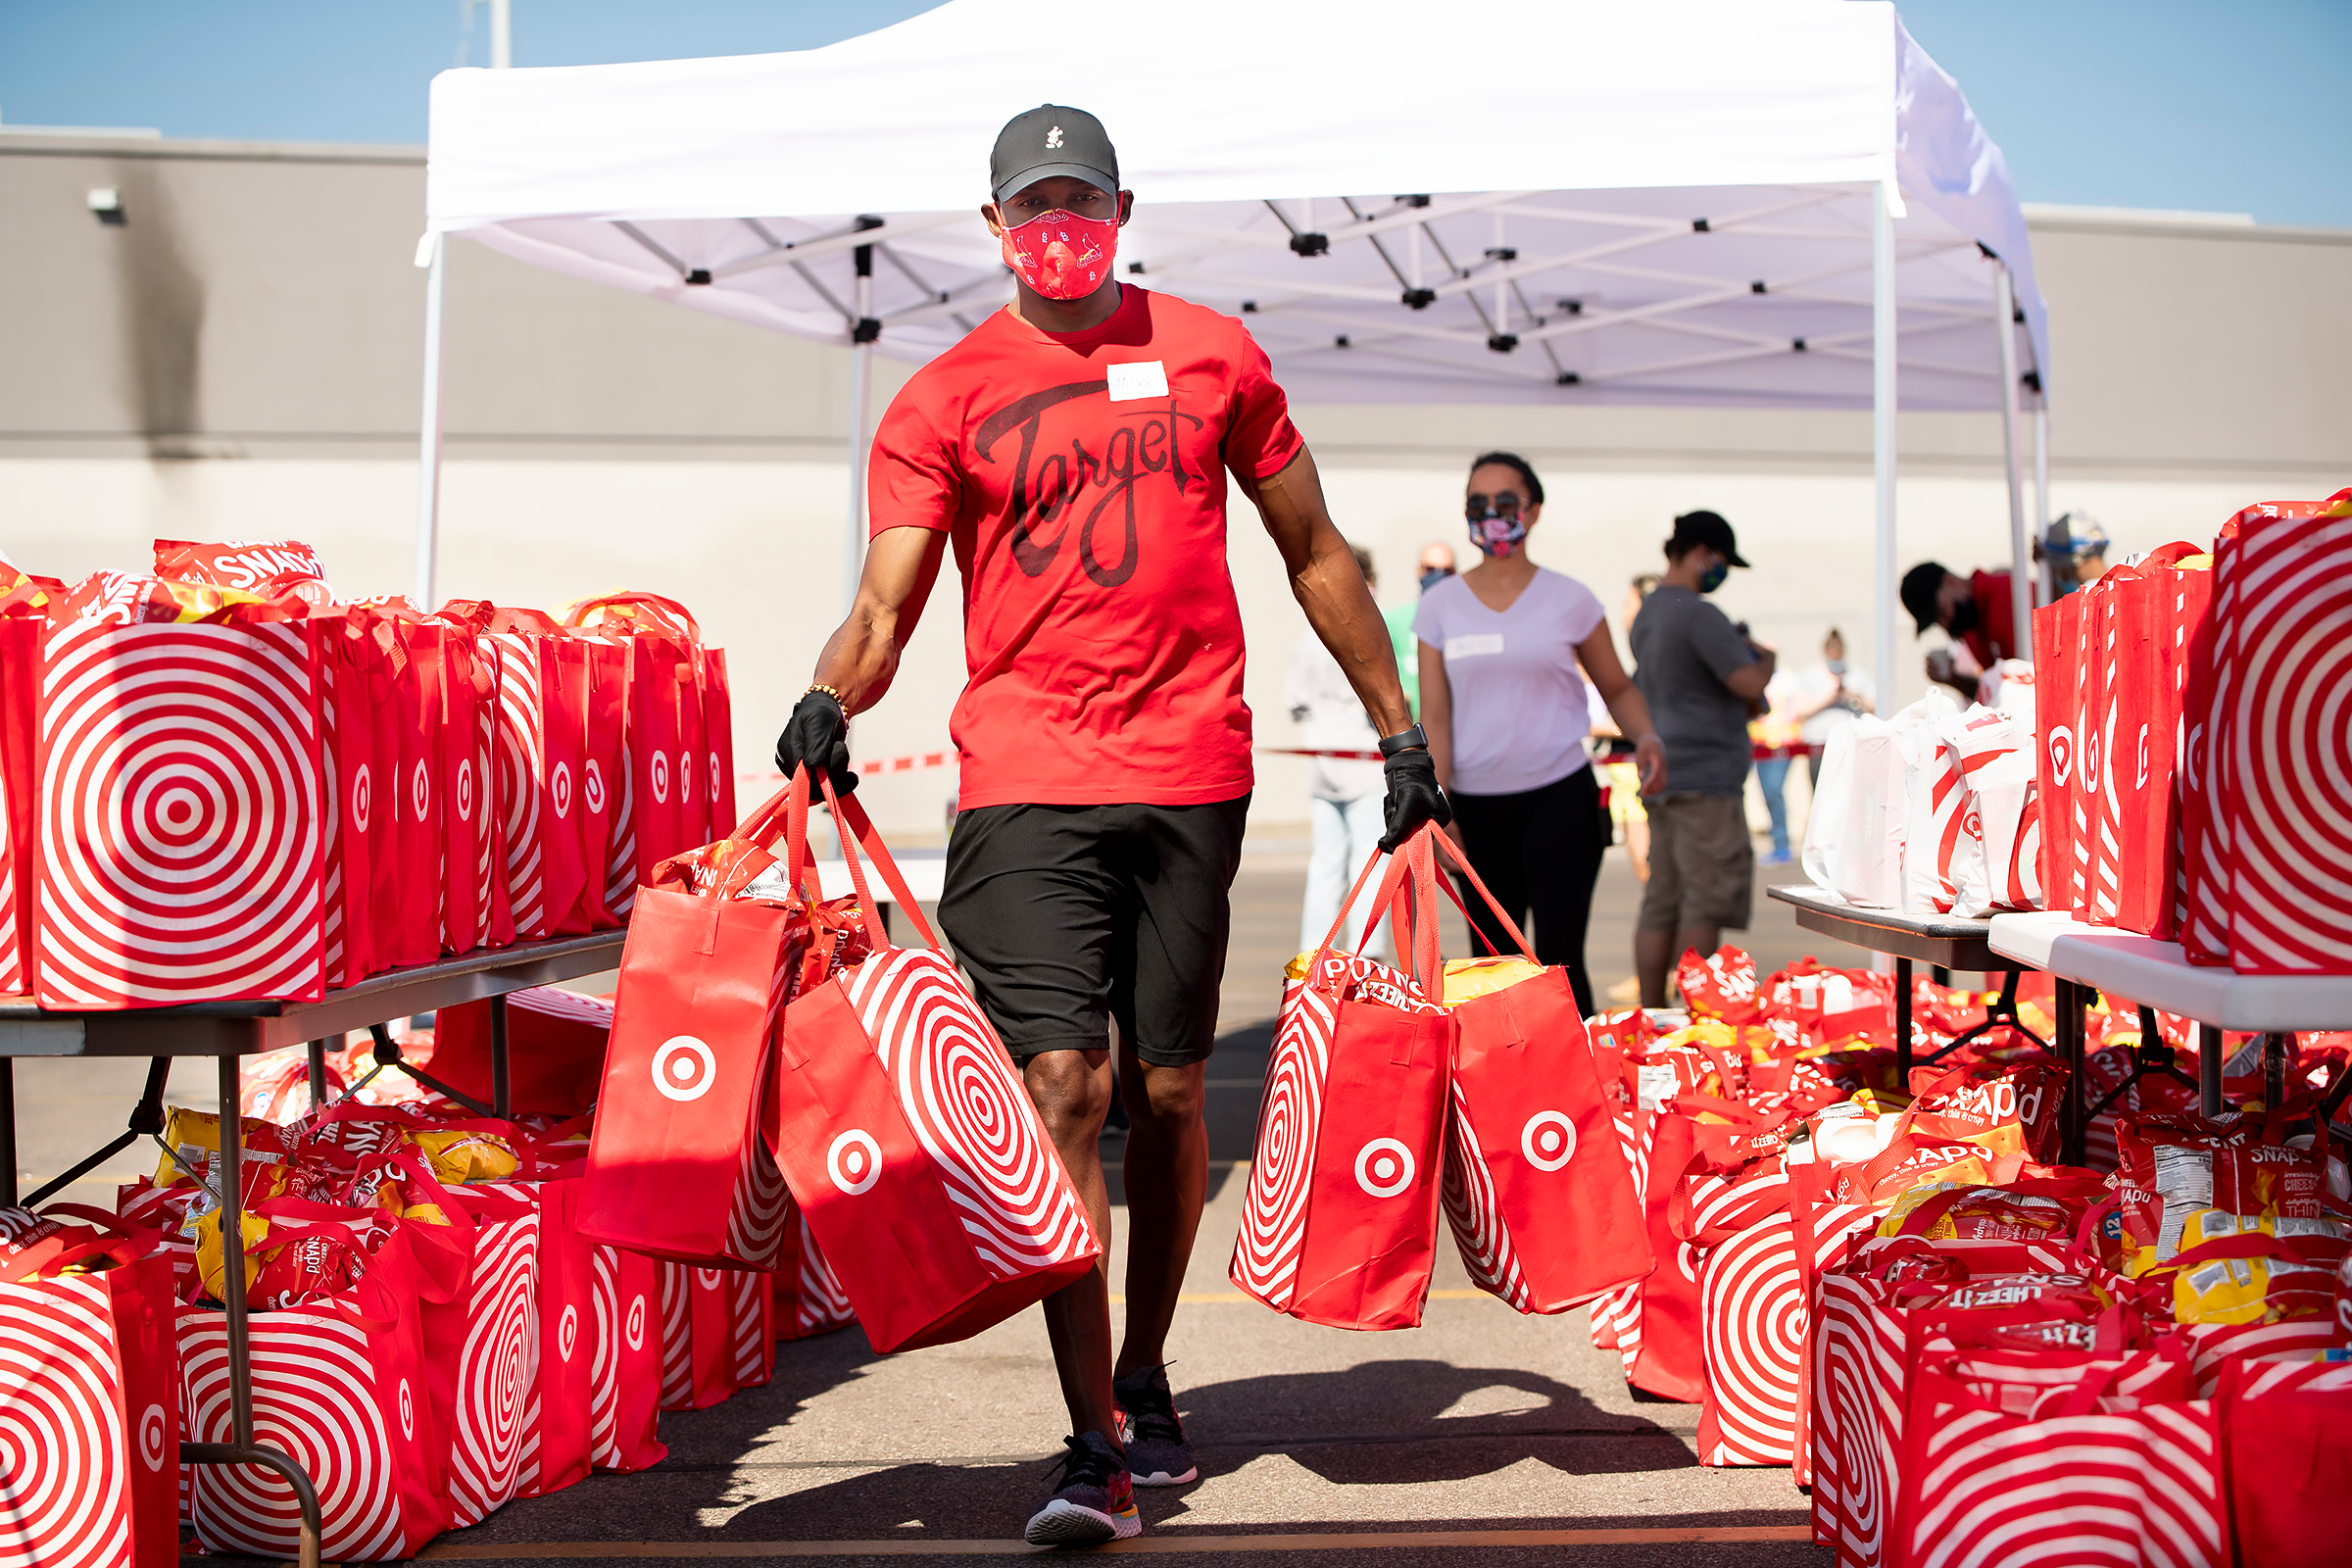 A Target employee pitches in at a volunteer event.